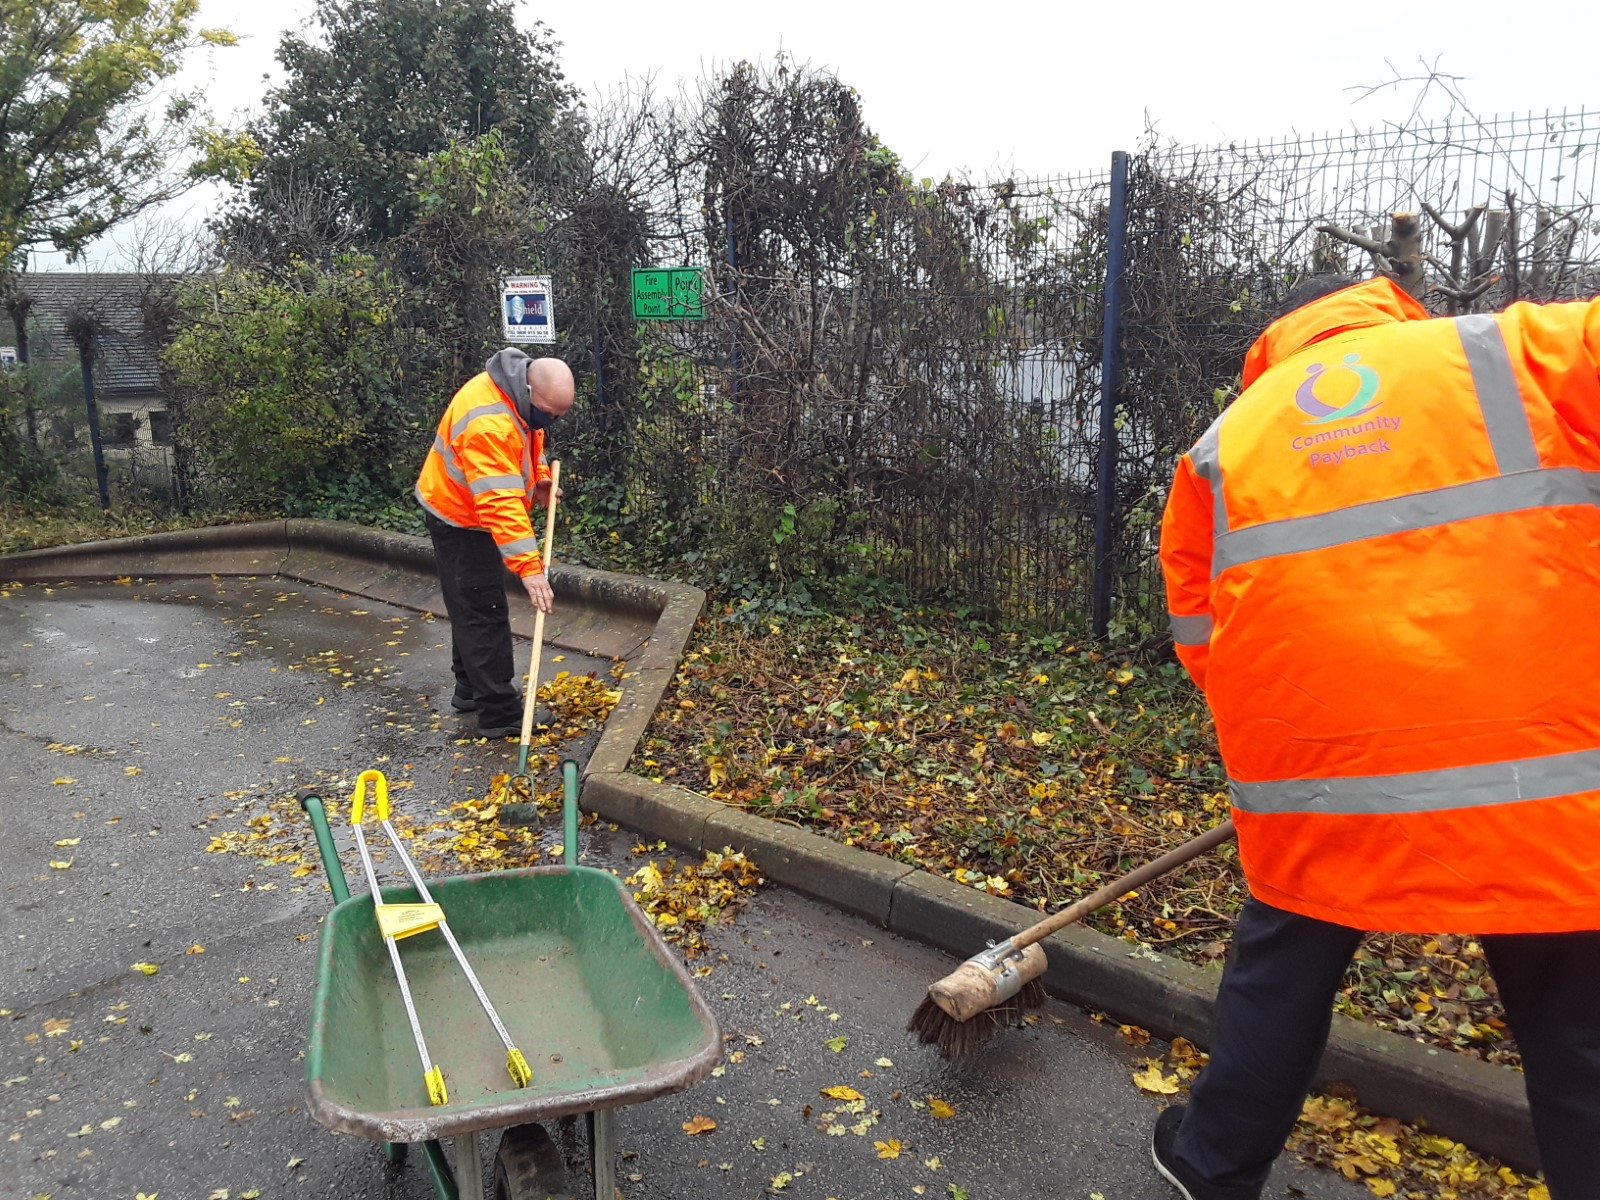 Community Payback Collaboration keeps gardens clean and tidy in West Yorkshire